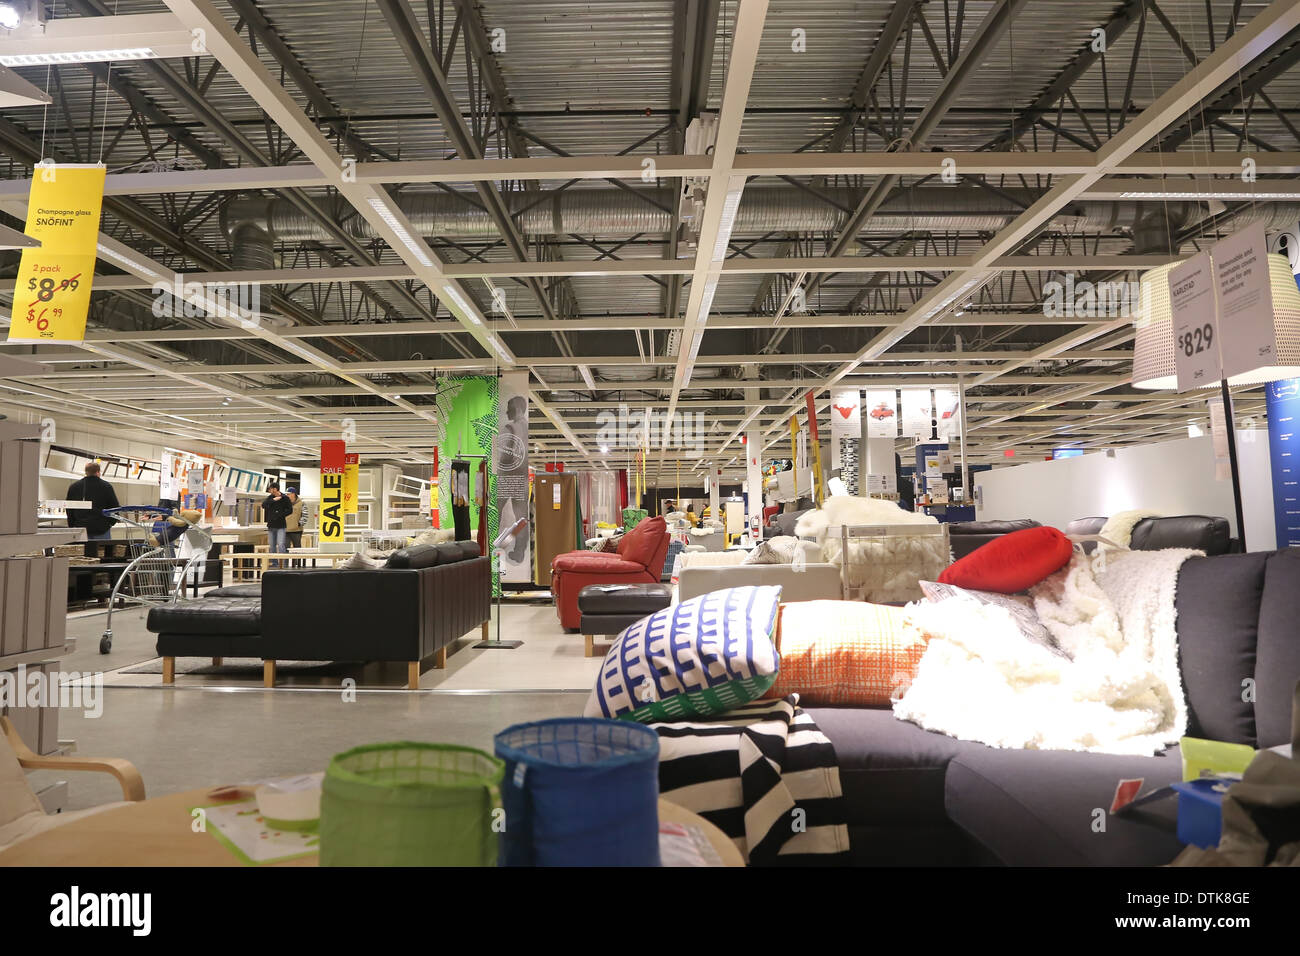 Outlet Brunnthal Ikea Showroom Stock Photos And Ikea Showroom Stock Images